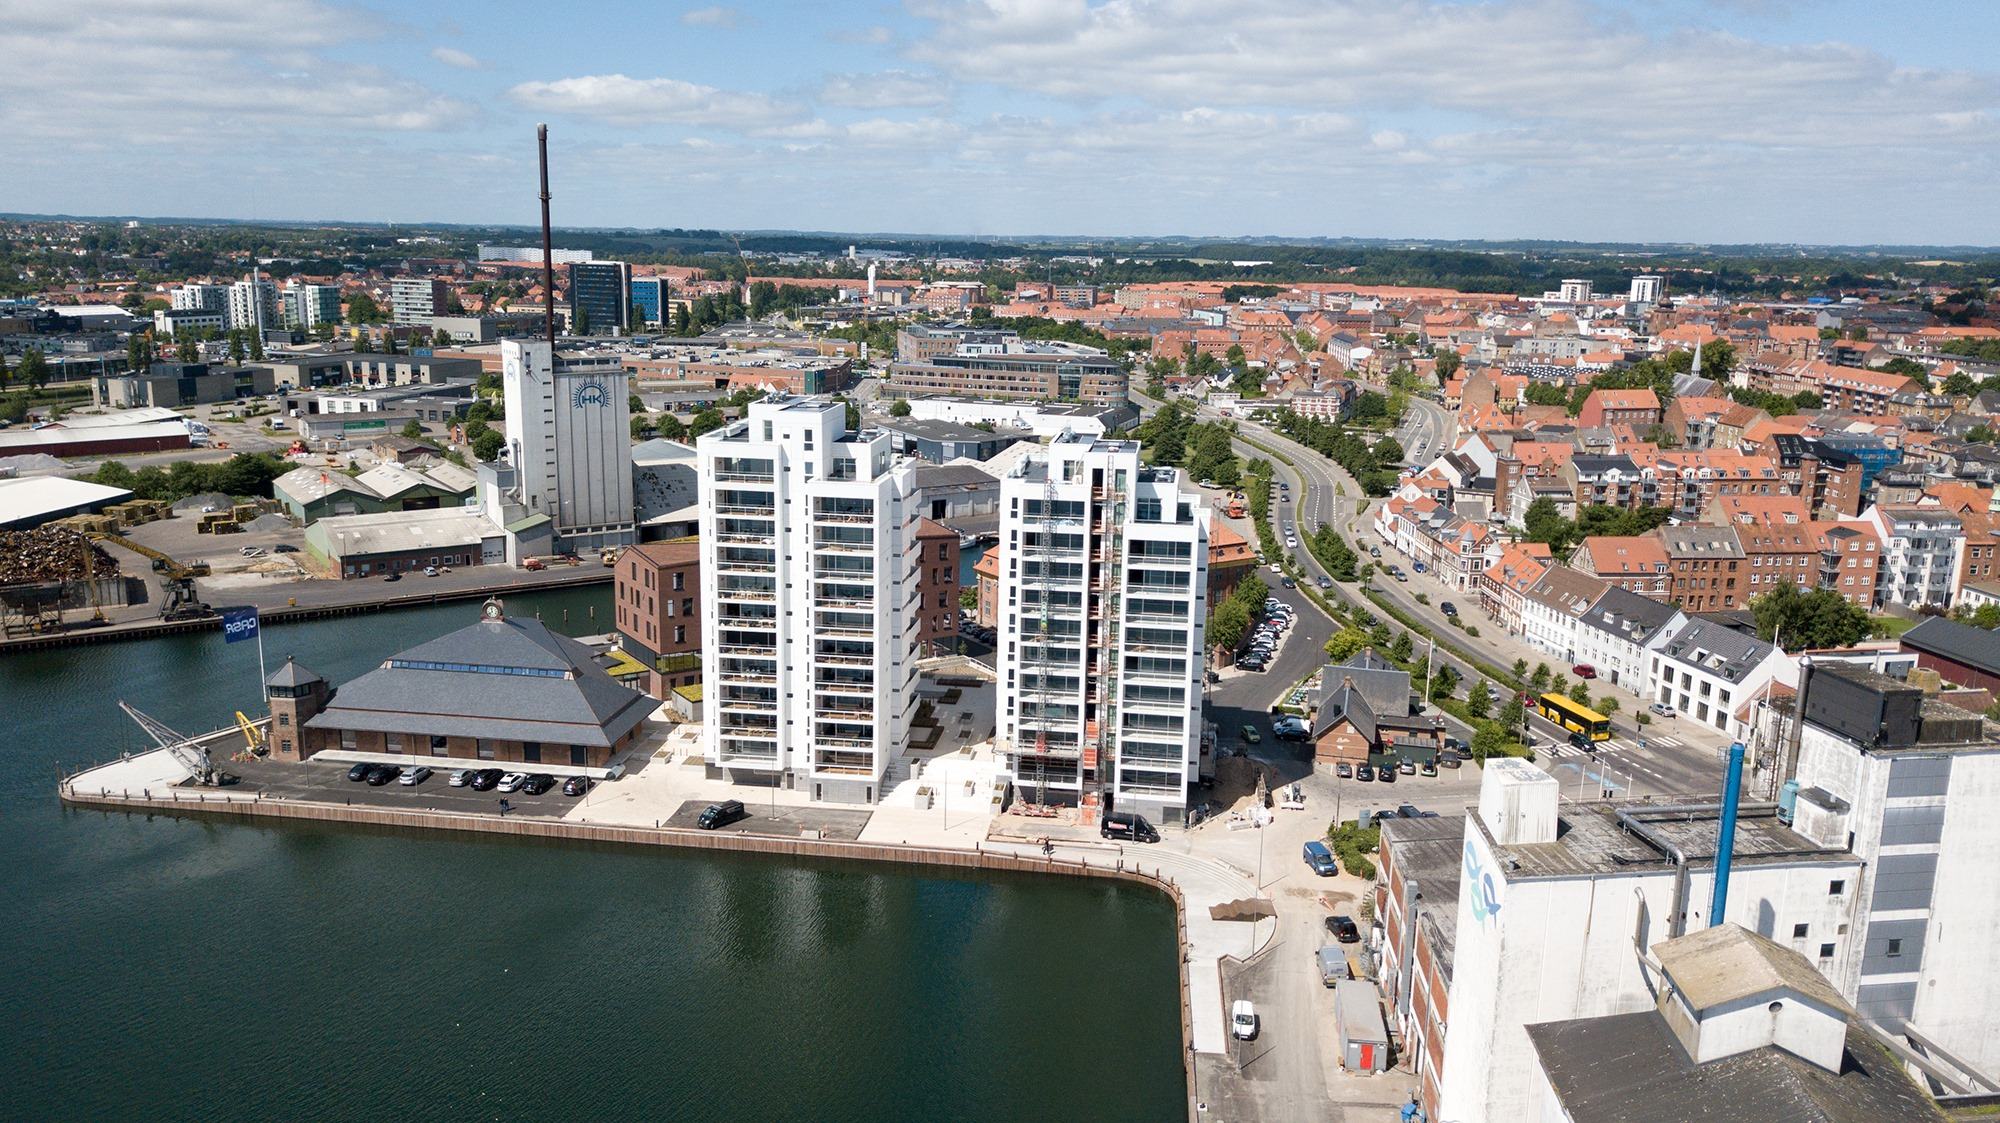 The story of Horsens is the story of transformation